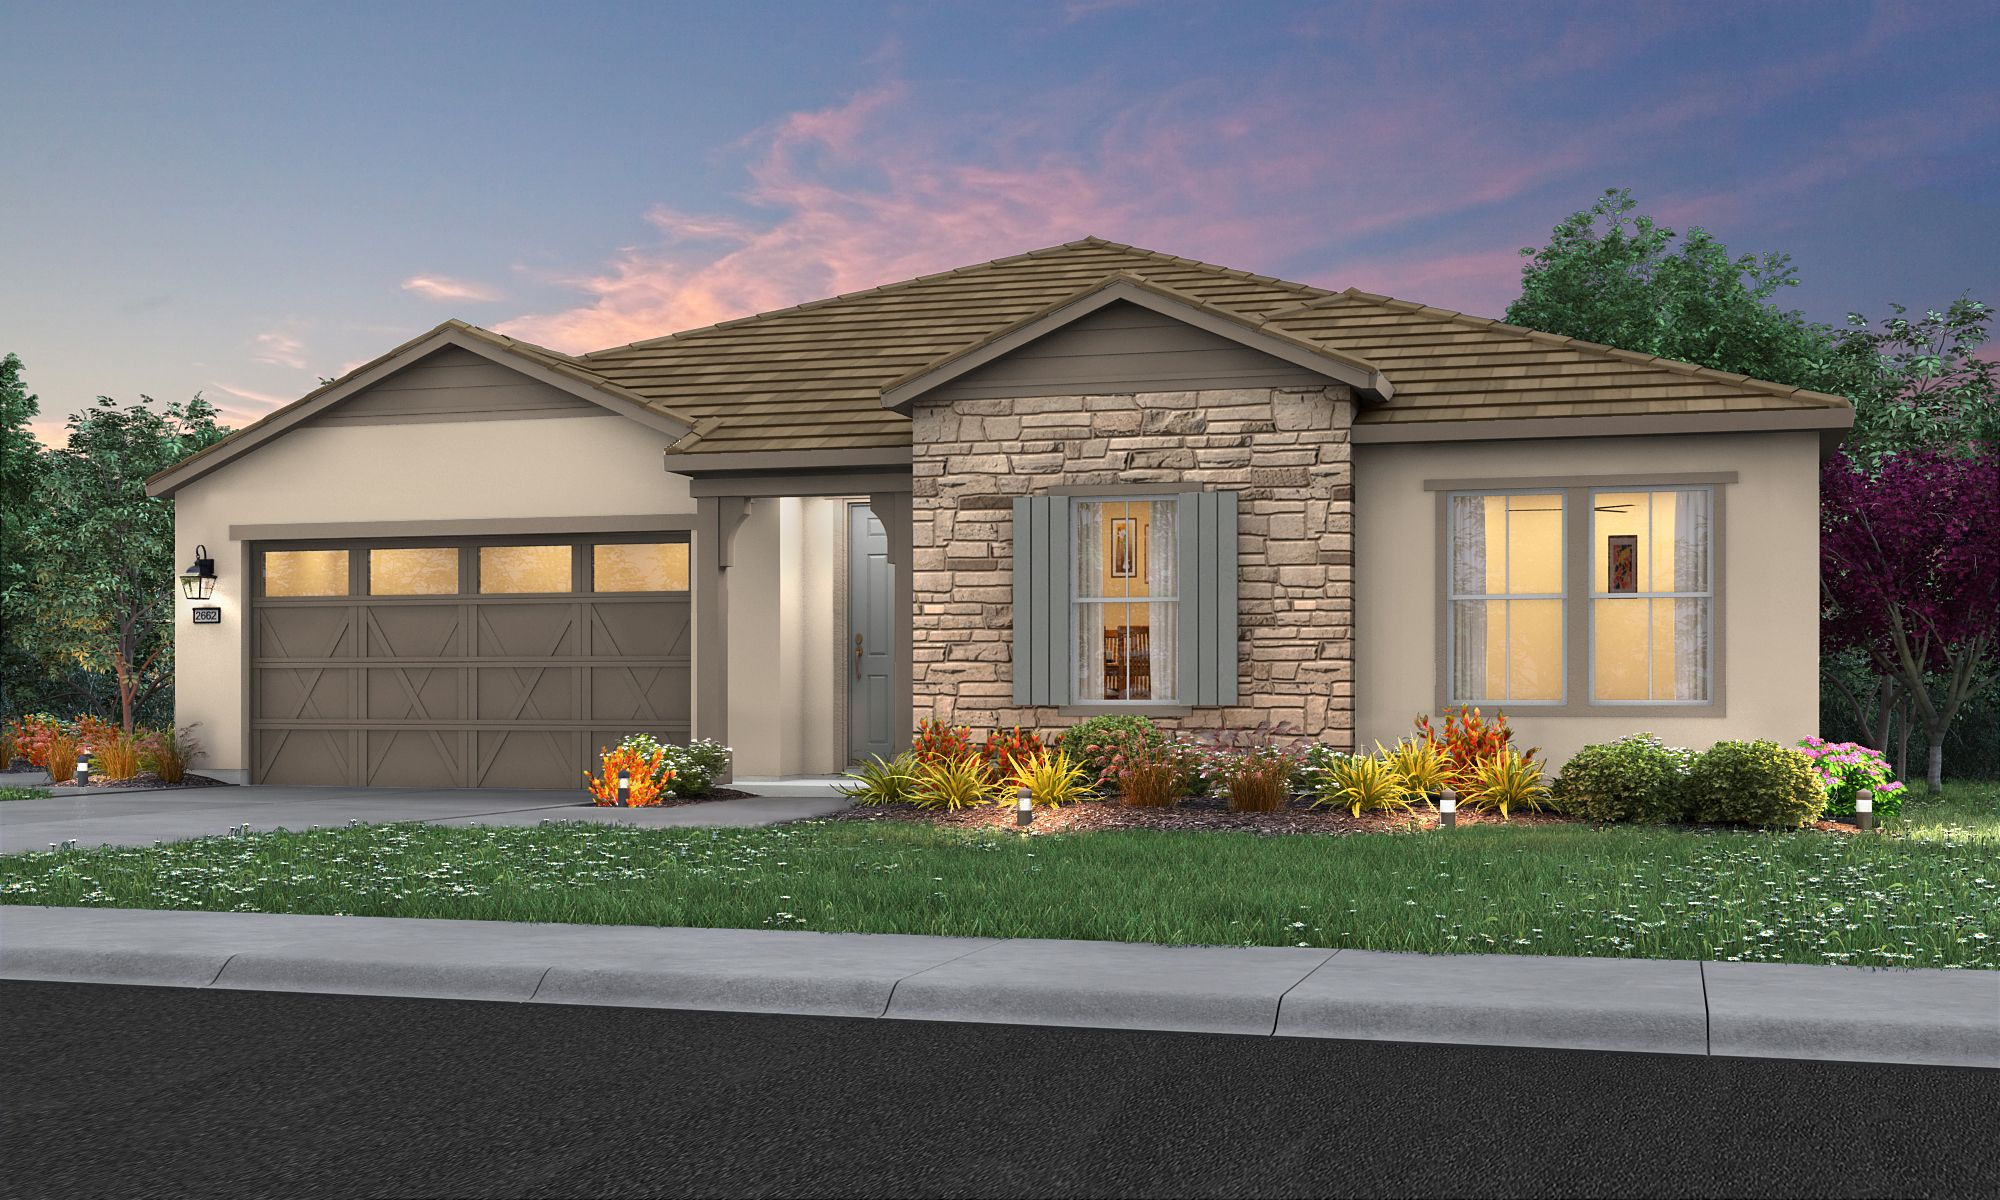 Get excited for the first release of new homes for sale at